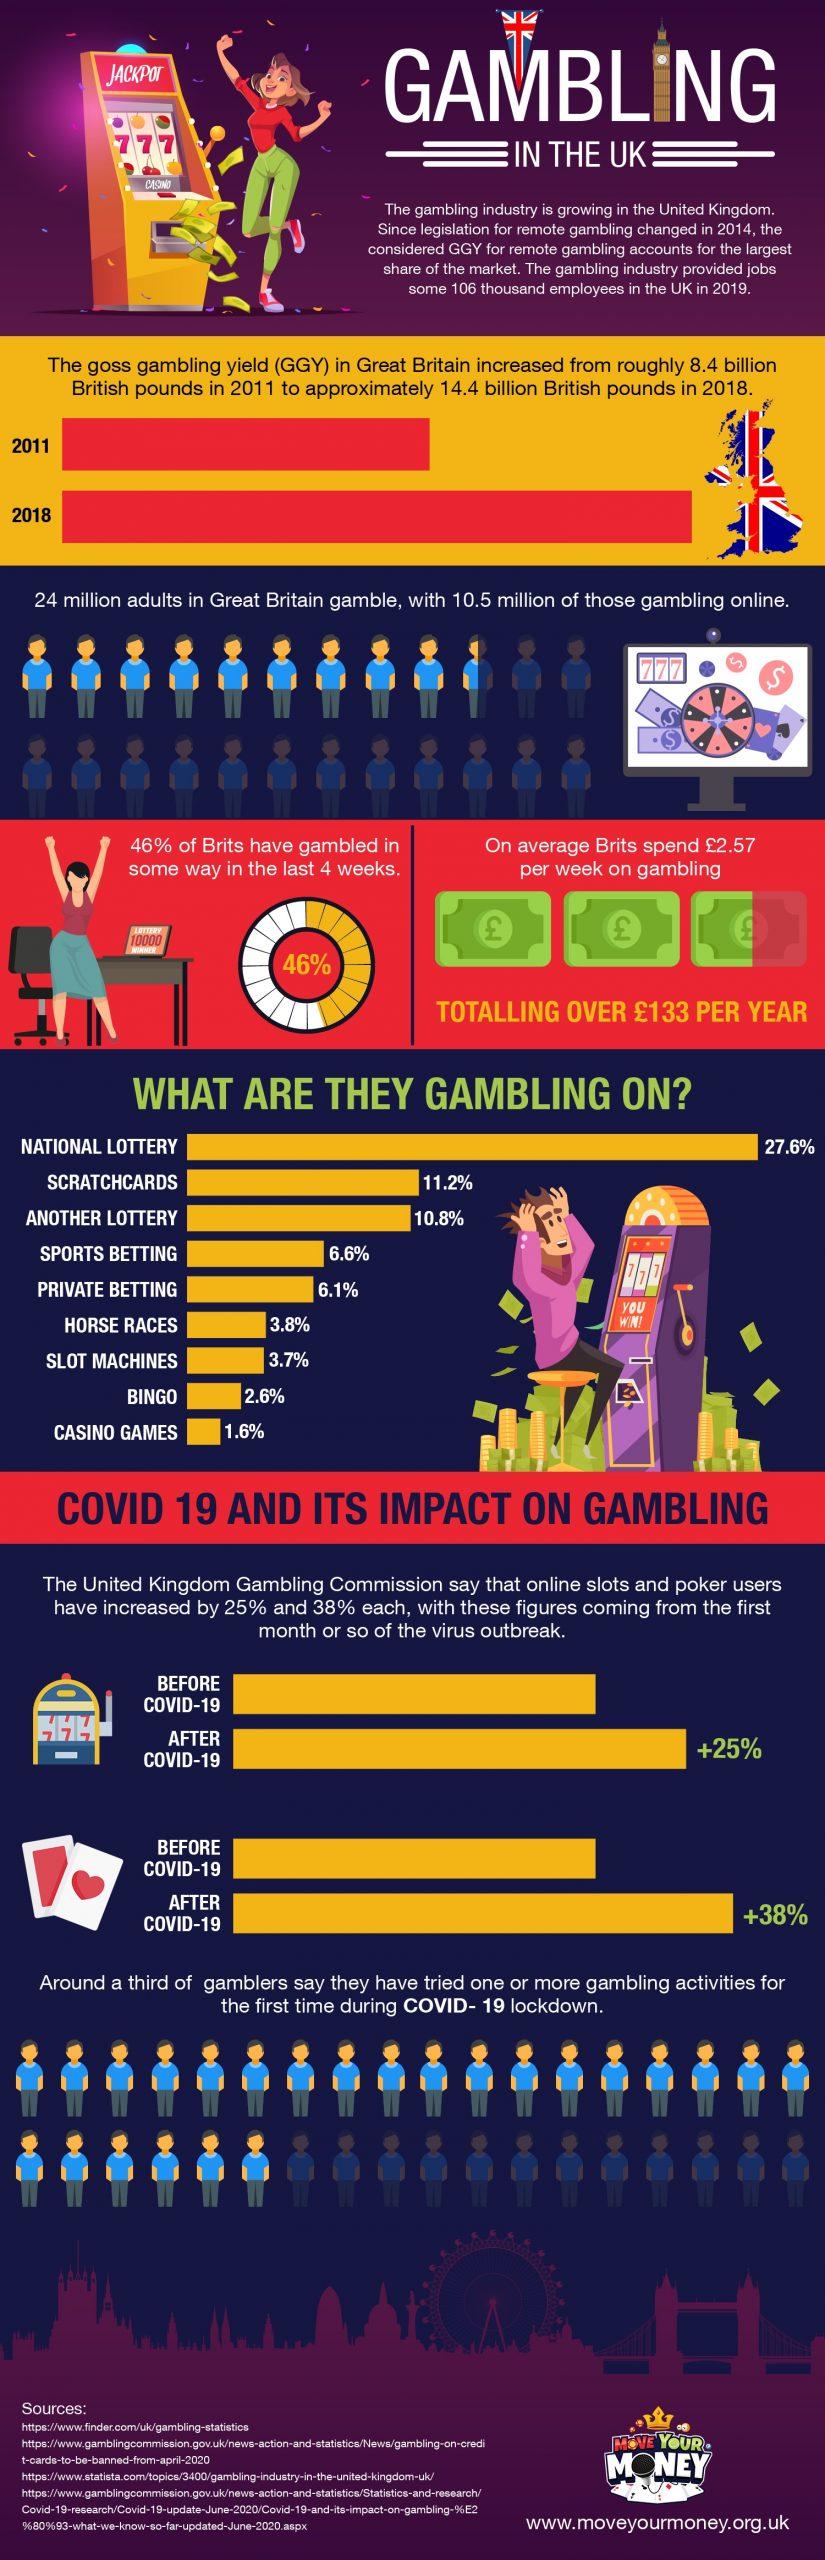 Gambling in the UK infographic